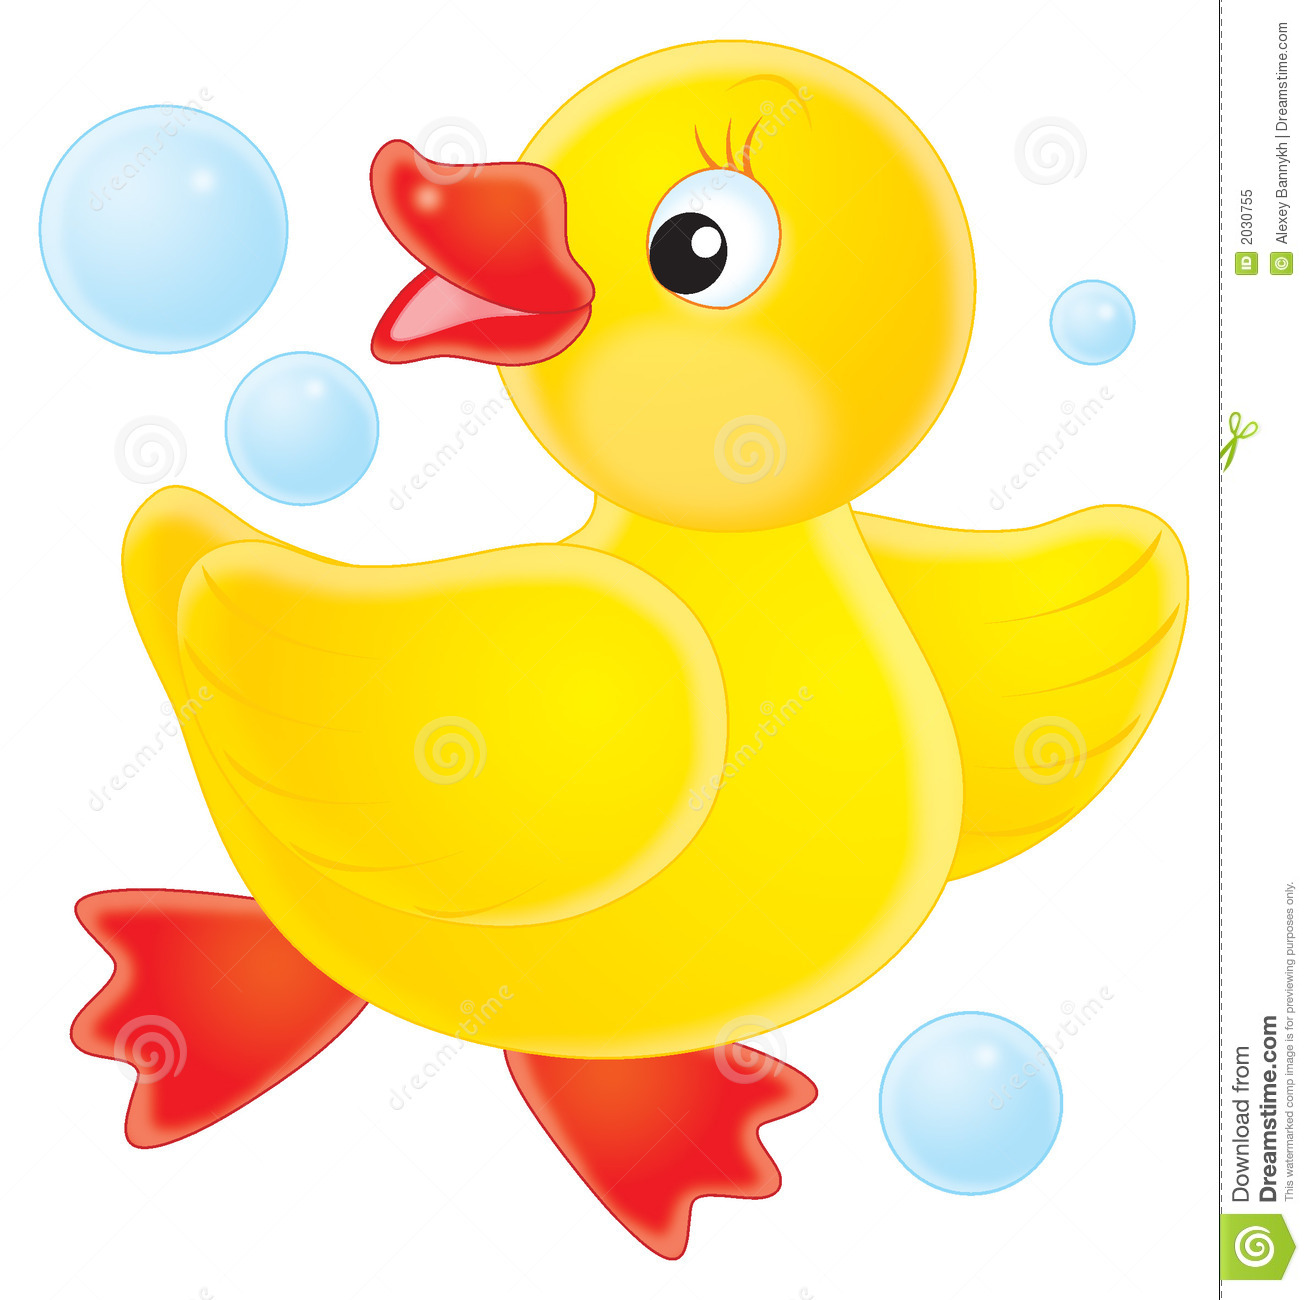 Rubber duck border clipart clip royalty free stock Duck Images Clipart | Free download best Duck Images Clipart ... clip royalty free stock